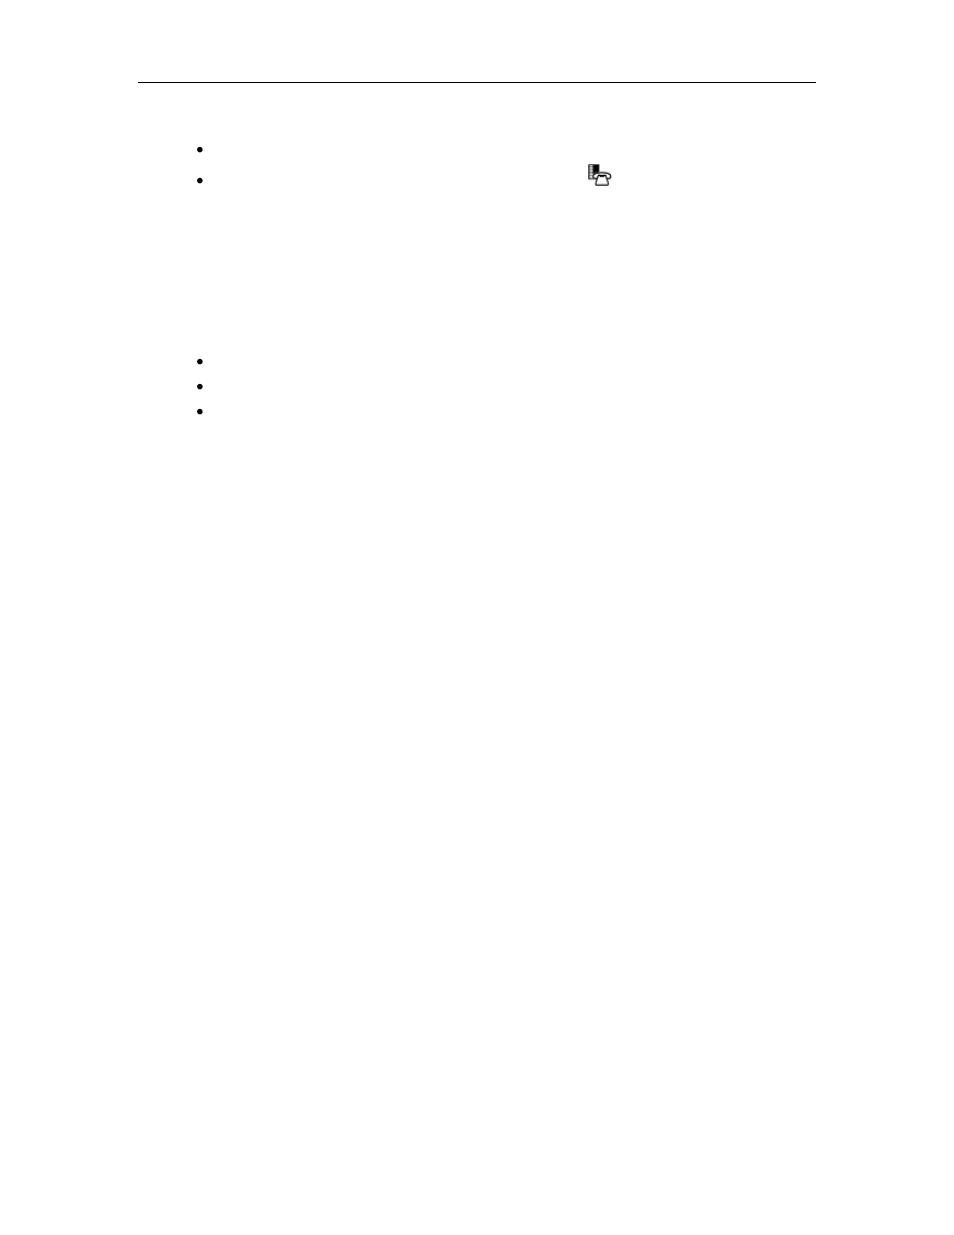 Mitel 5330 IP Phone User Manual | Page 55 / 57 | Also for: 5340 IP Phone